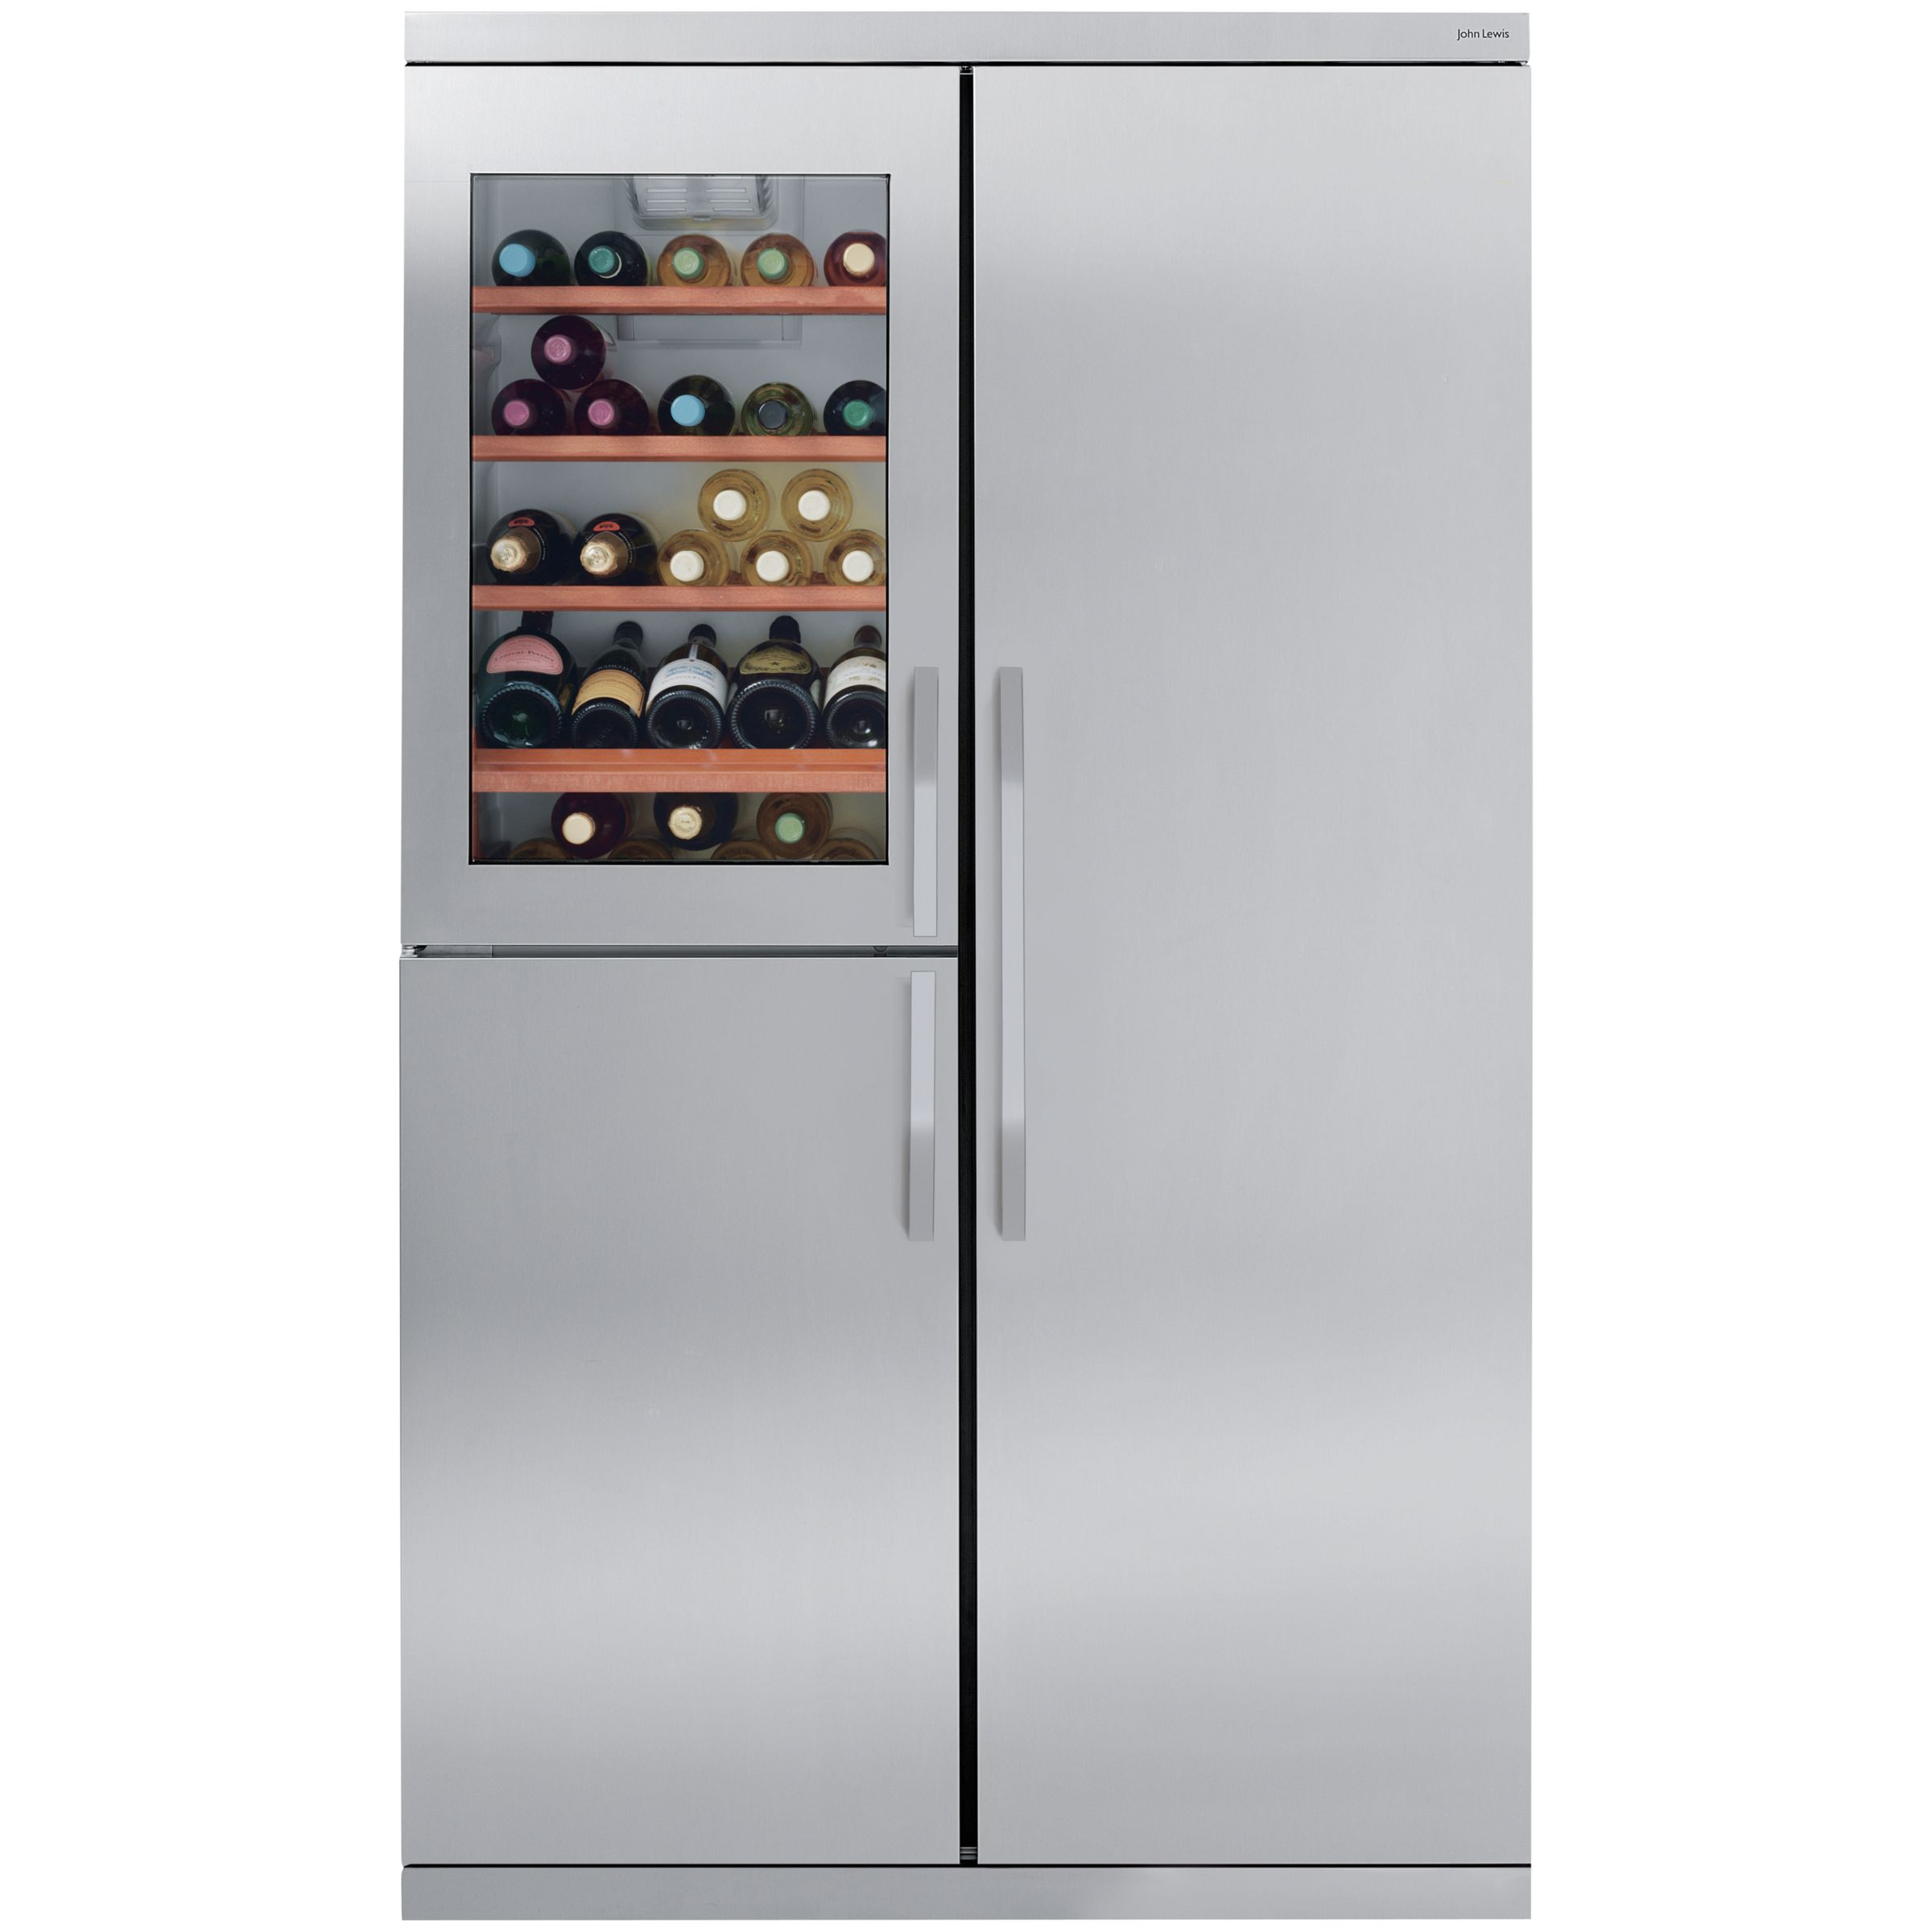 JOHN LEWIS JLDMFF001 SLIM DEPTH WINE COOLER